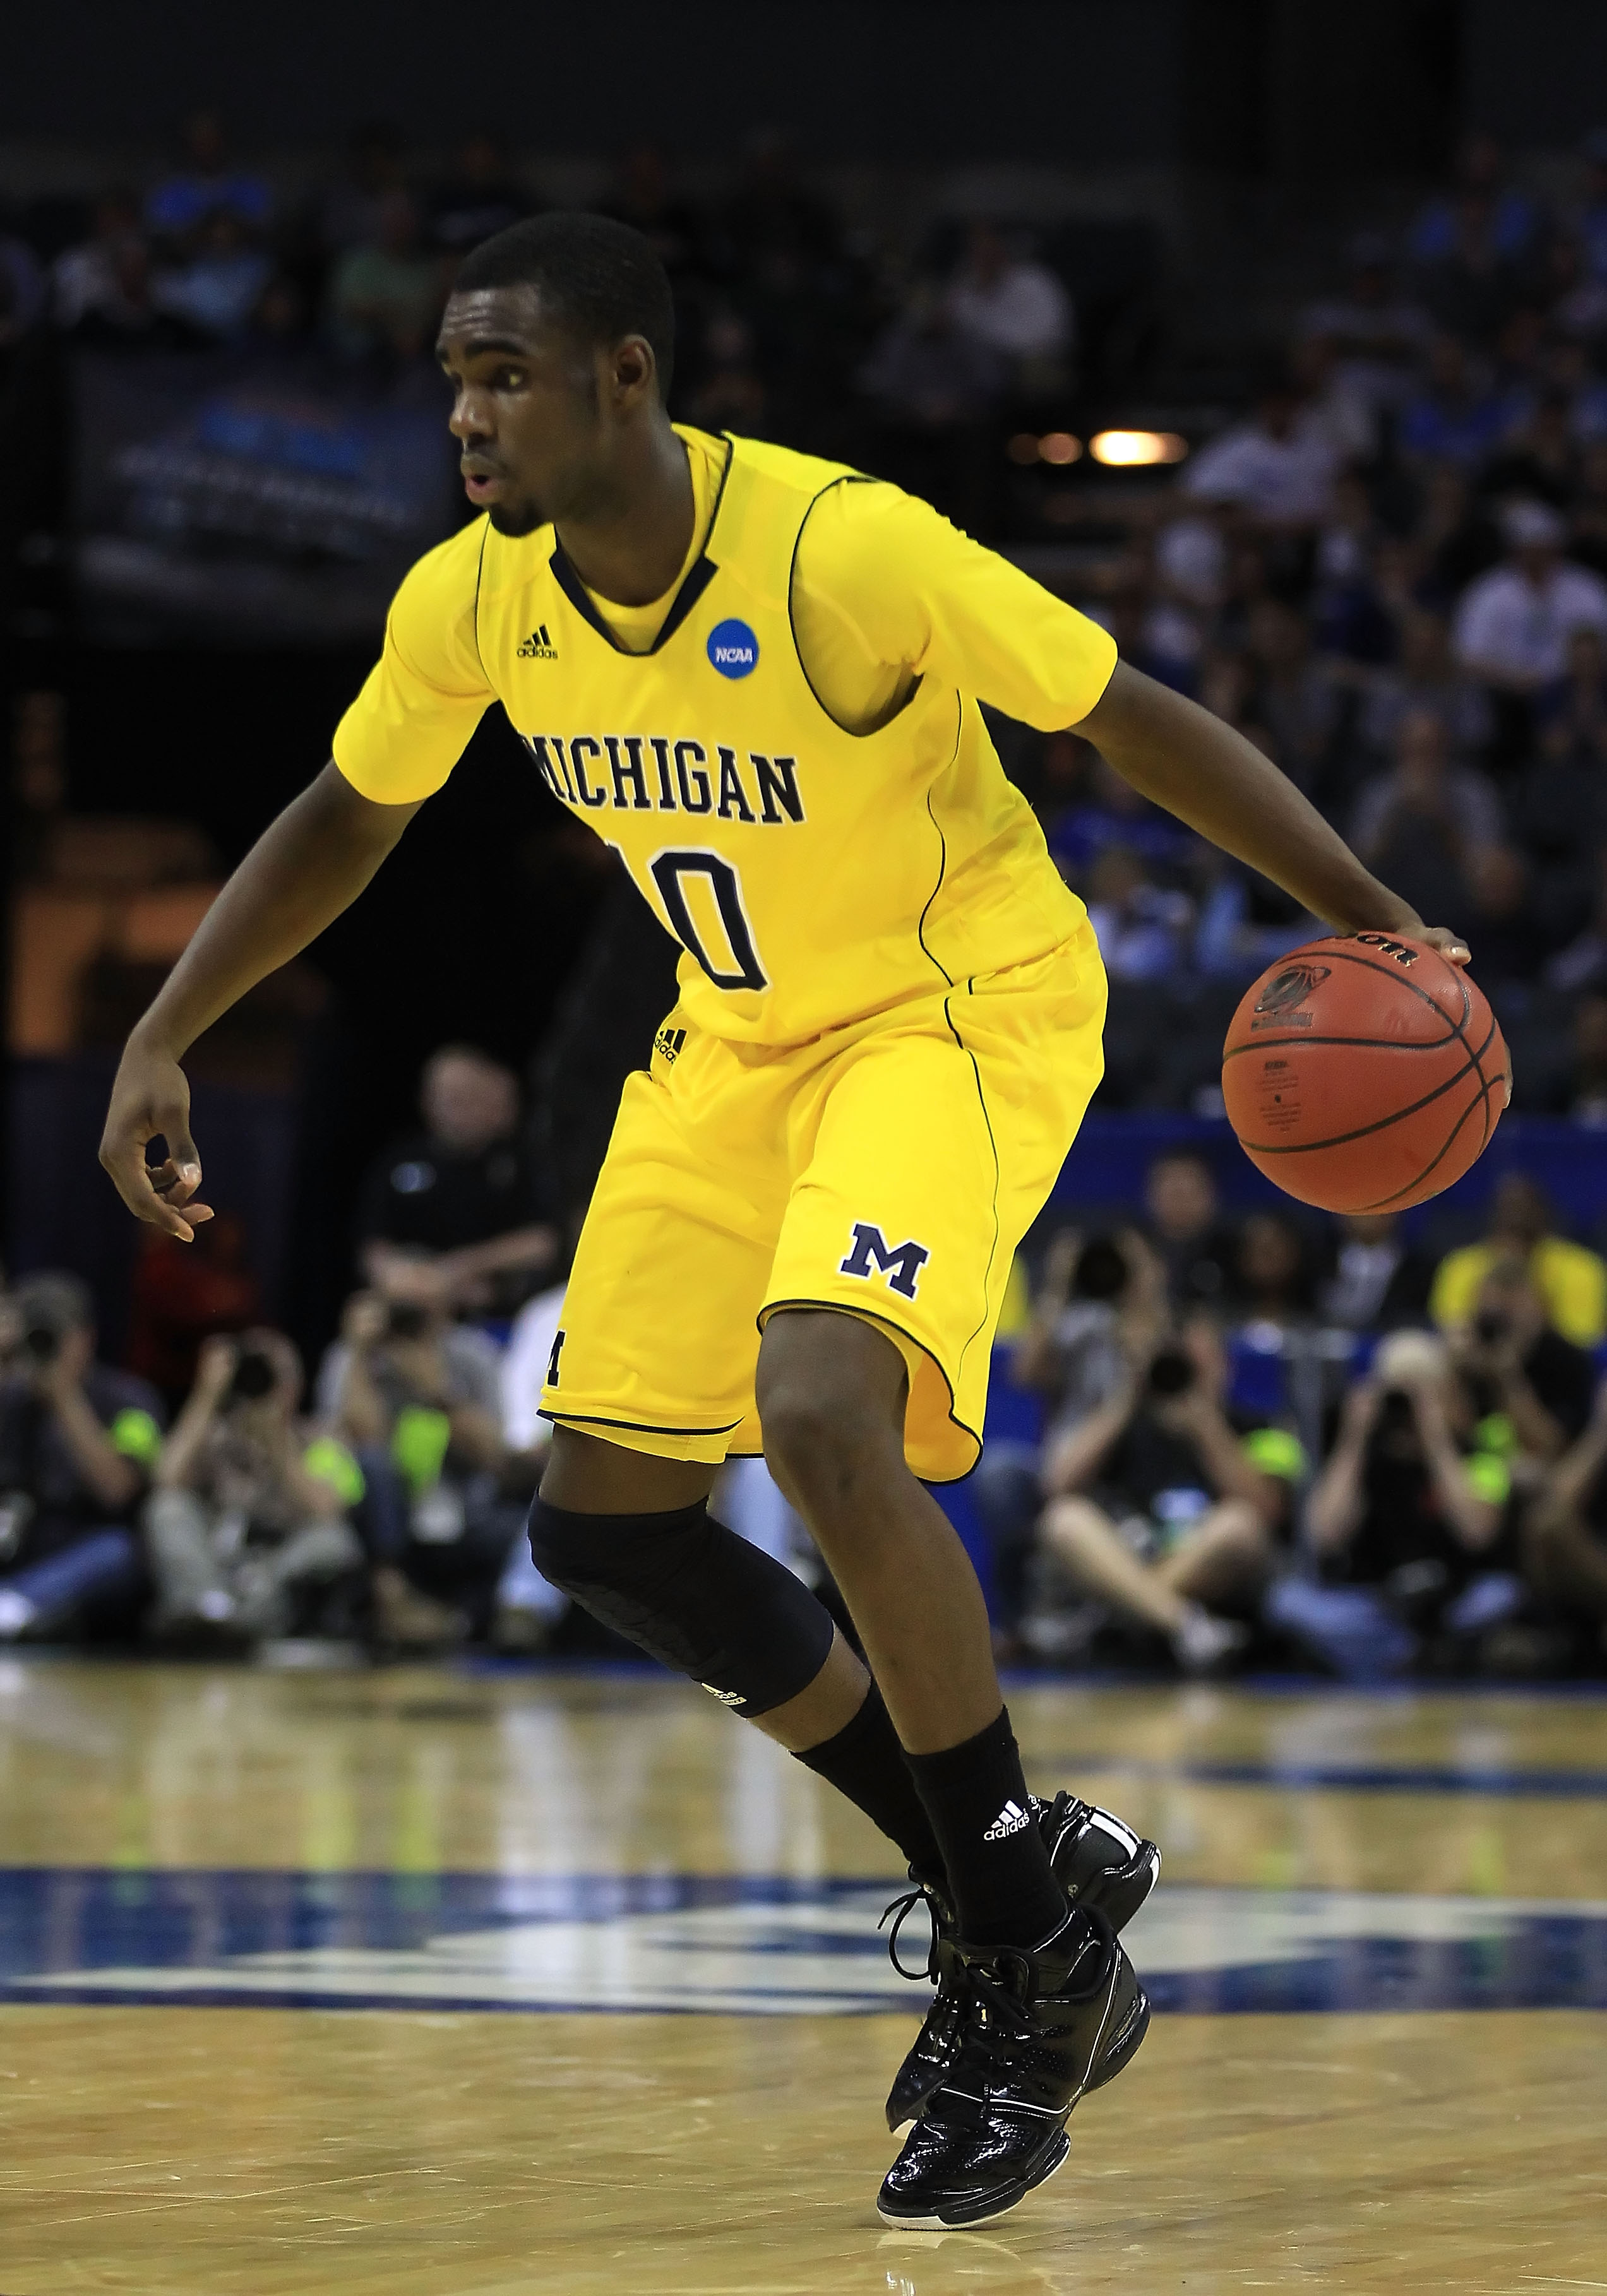 CHARLOTTE, NC - MARCH 20:  Tim Hardaway Jr. #10 of the Michigan Wolverines moves the ball while taking on the Duke Blue Devils during the third round of the 2011 NCAA men's basketball tournament at Time Warner Cable Arena on March 20, 2011 in Charlotte, N